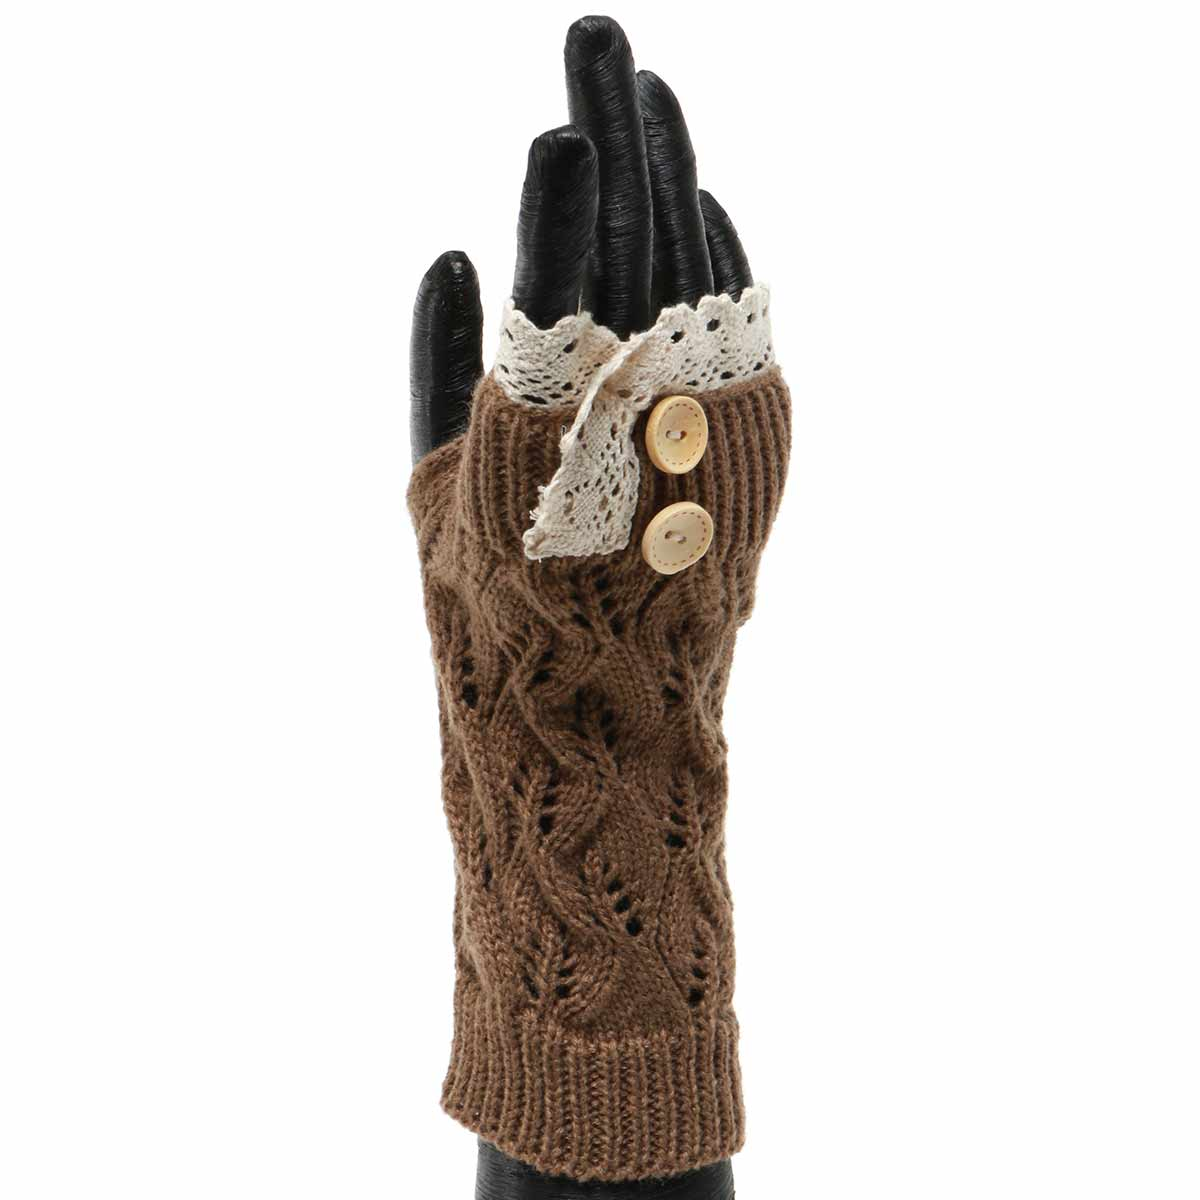 BROWN KNIT FINGERLESS GLOVE WITH LACE AND BUTTONS 50sp